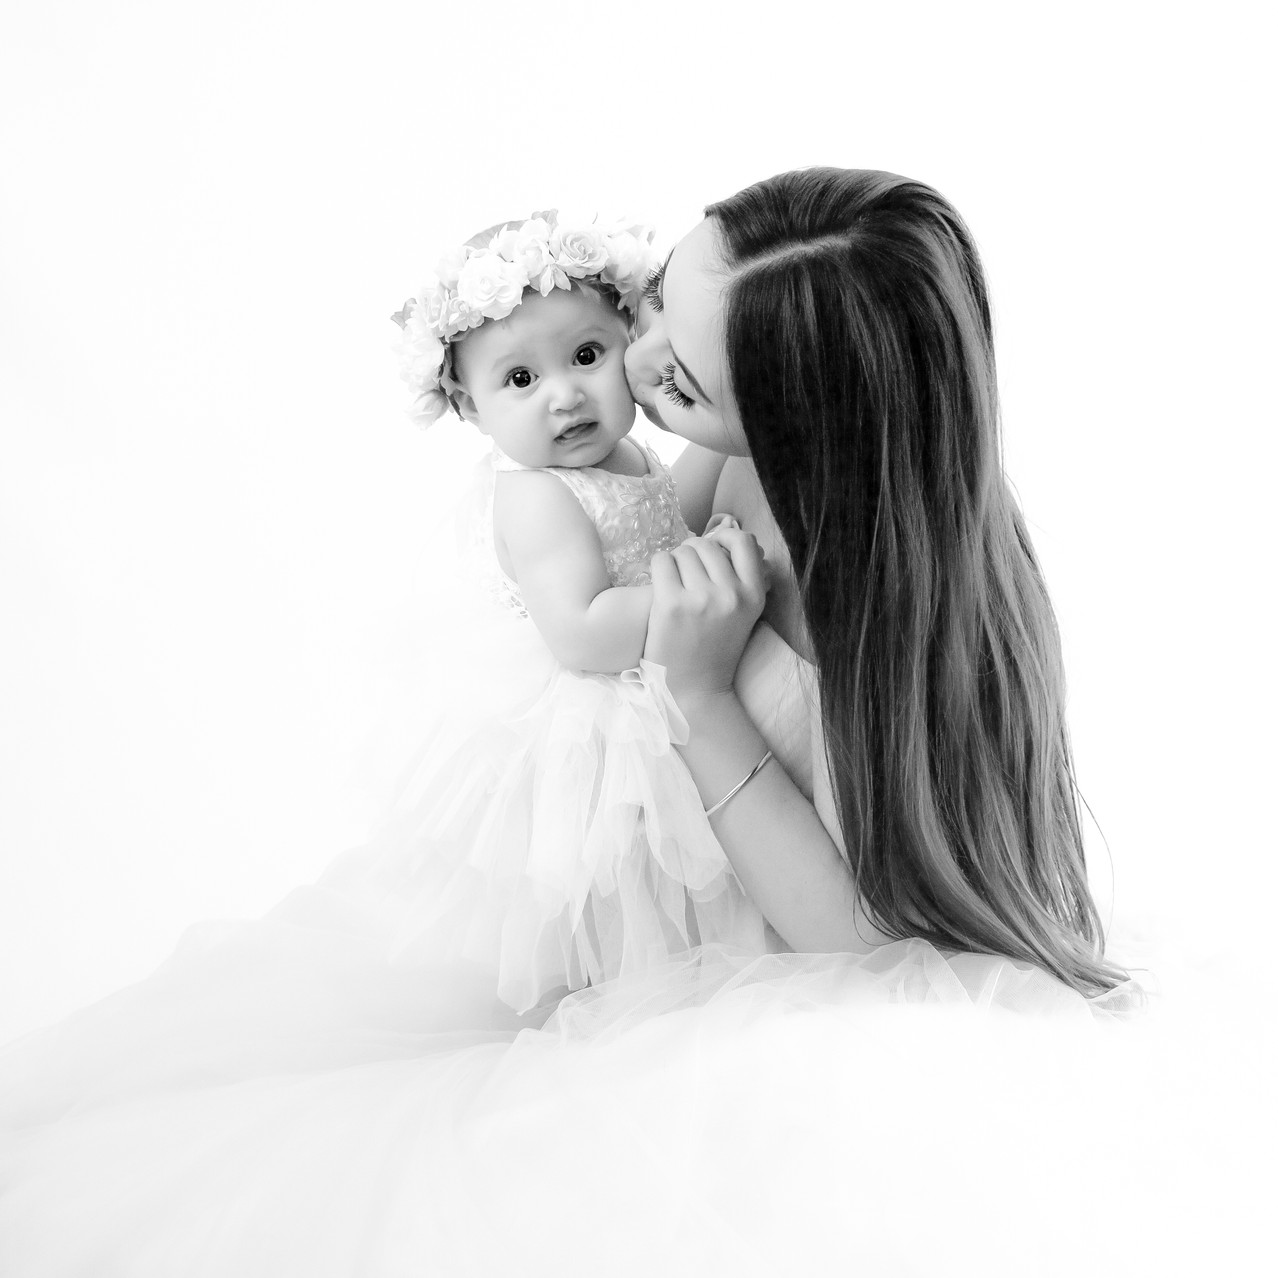 Pic 1. Creative Family, Children and baby Photography Studio shoot, Dream Alice Photography & Art, Gold Coast